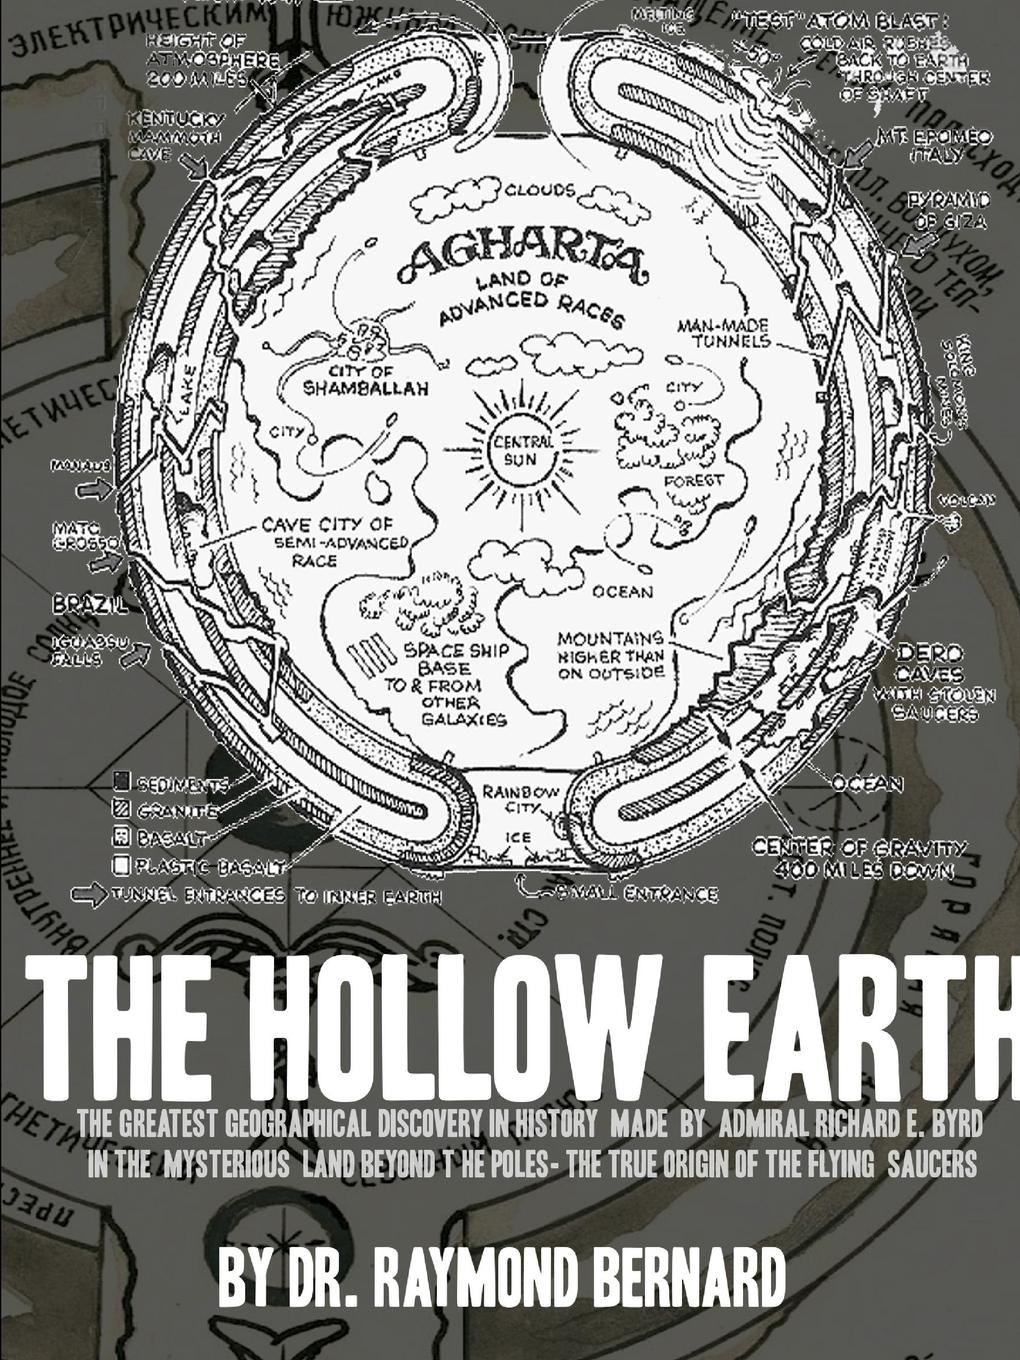 Raymond W Bernard The Hollow Earth. The Greatest Geographical Discovery in History Made by Admiral Richard E. Byrd in the Mysterious Land Beyond the Poles- The True Origin of the Flying Saucers w byrd in nomine a 4